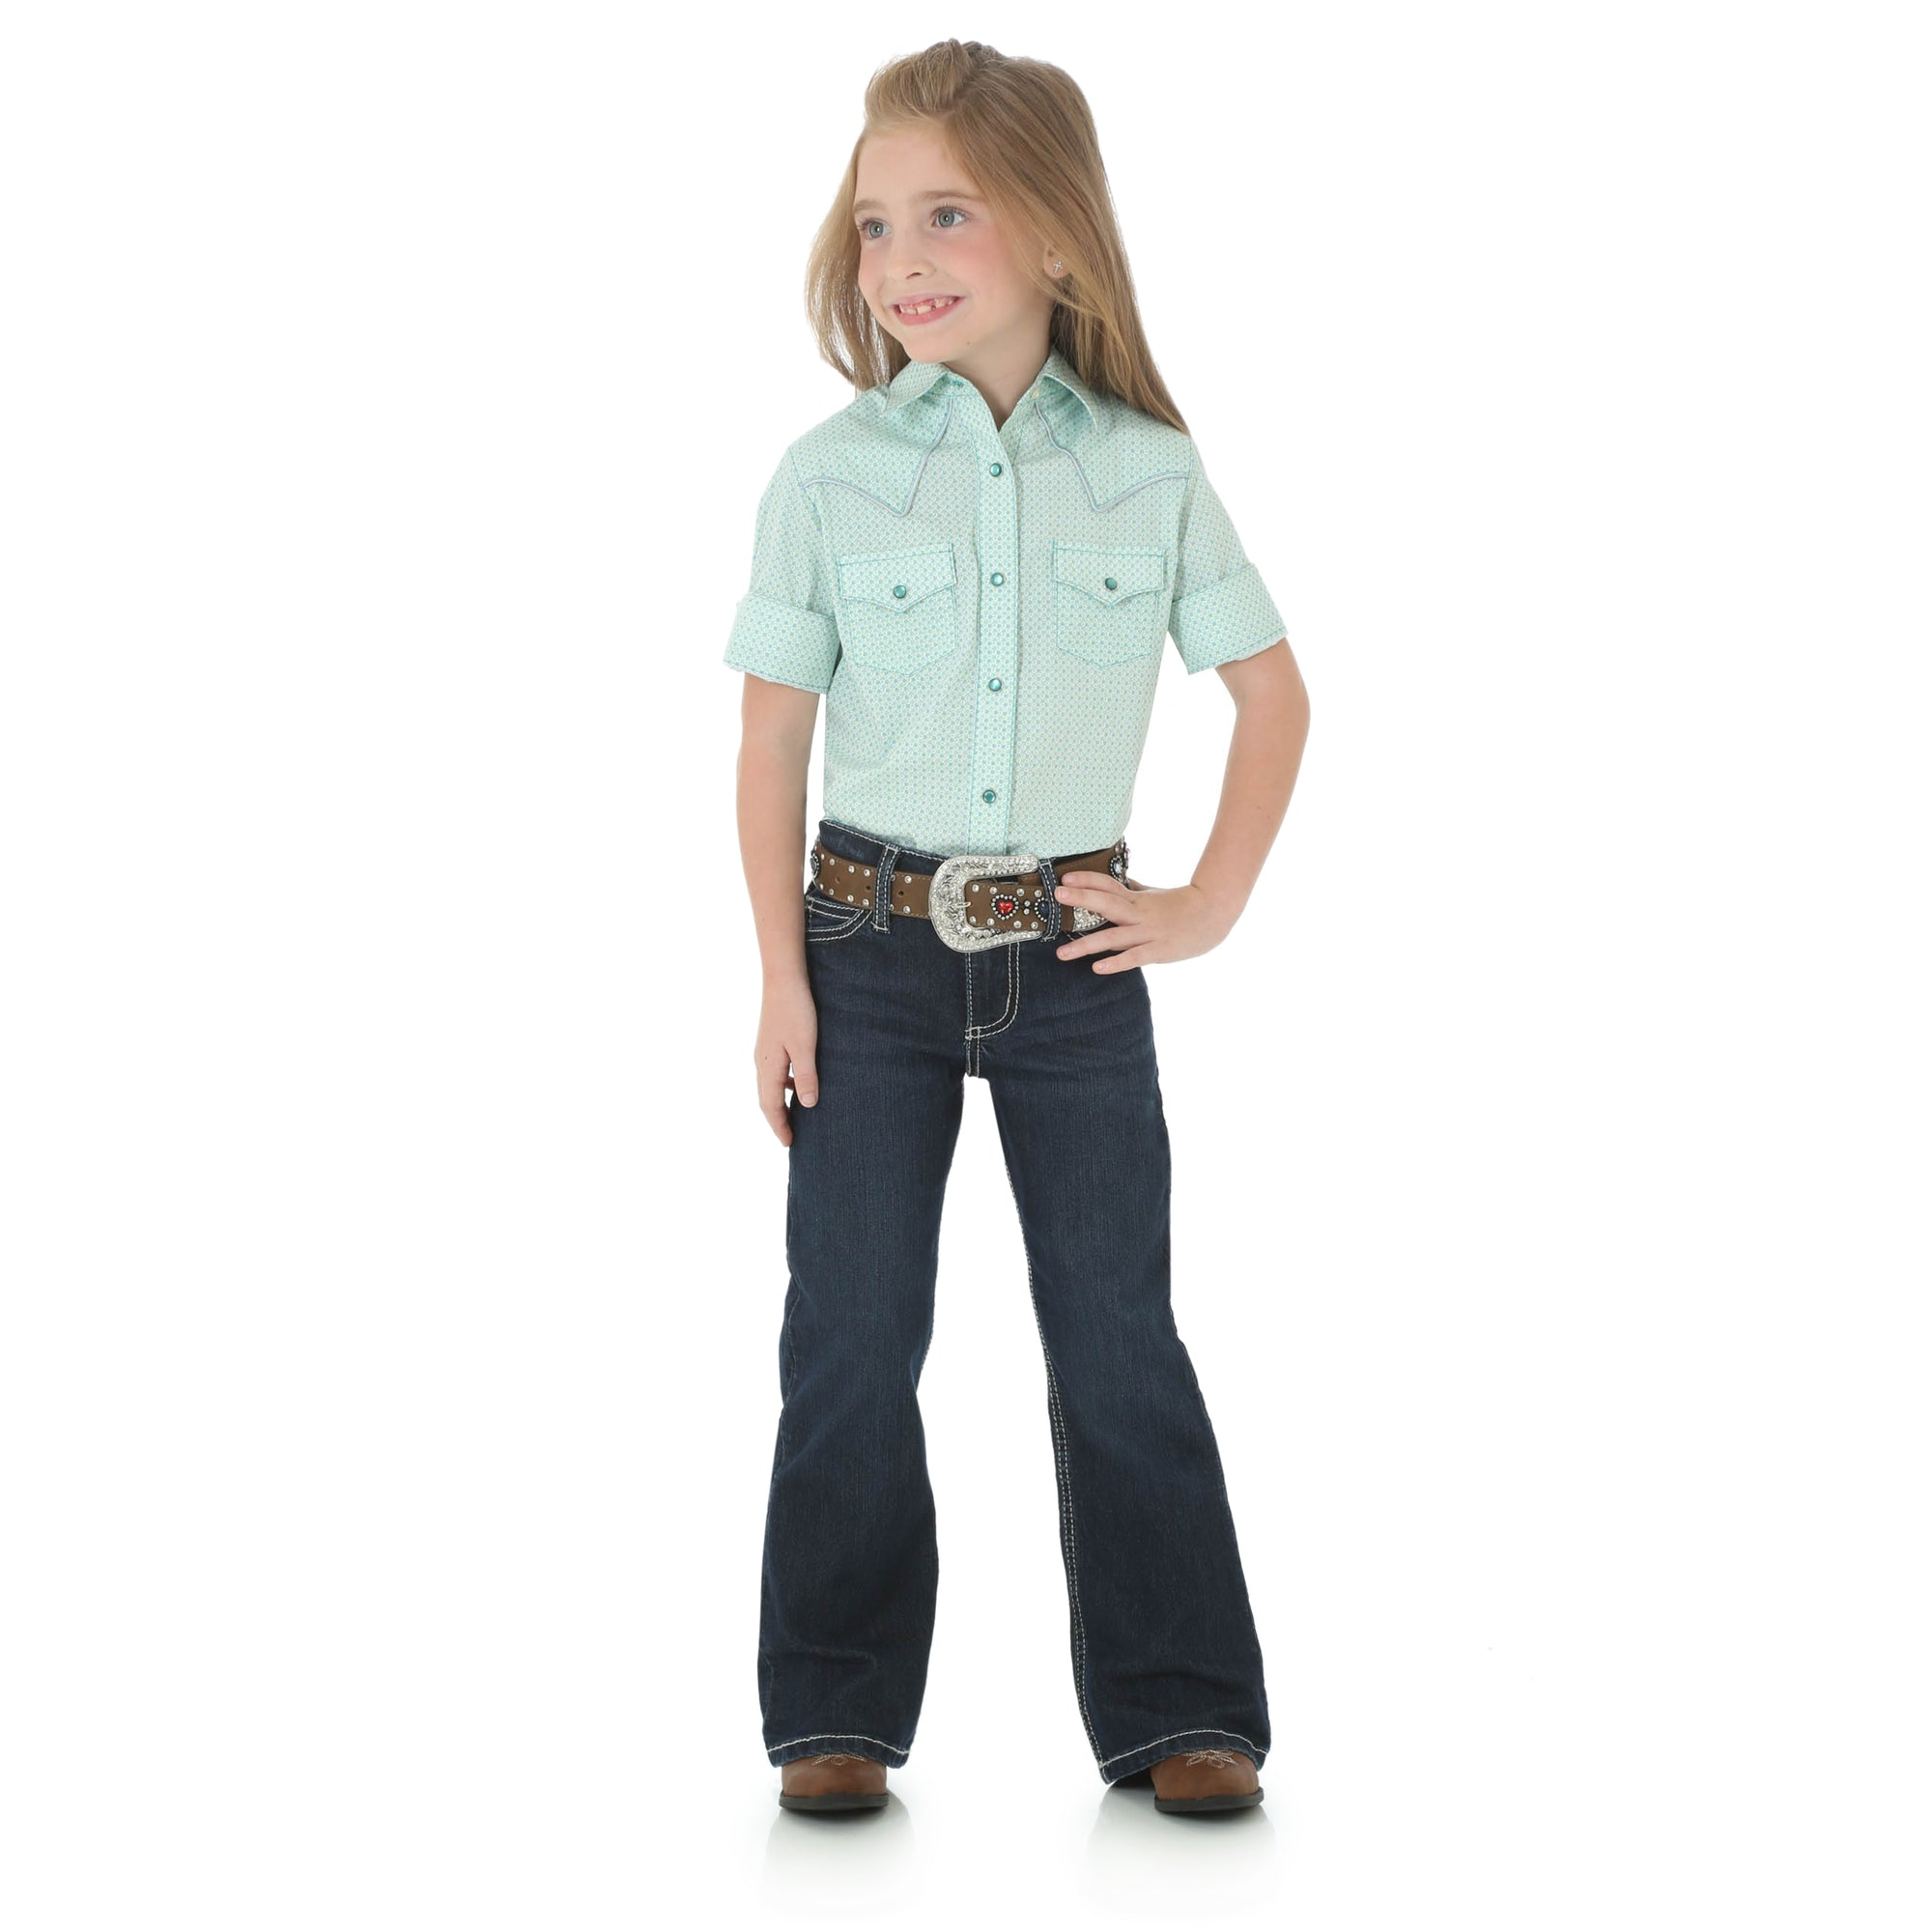 Wrangler Girls' Western Shirt